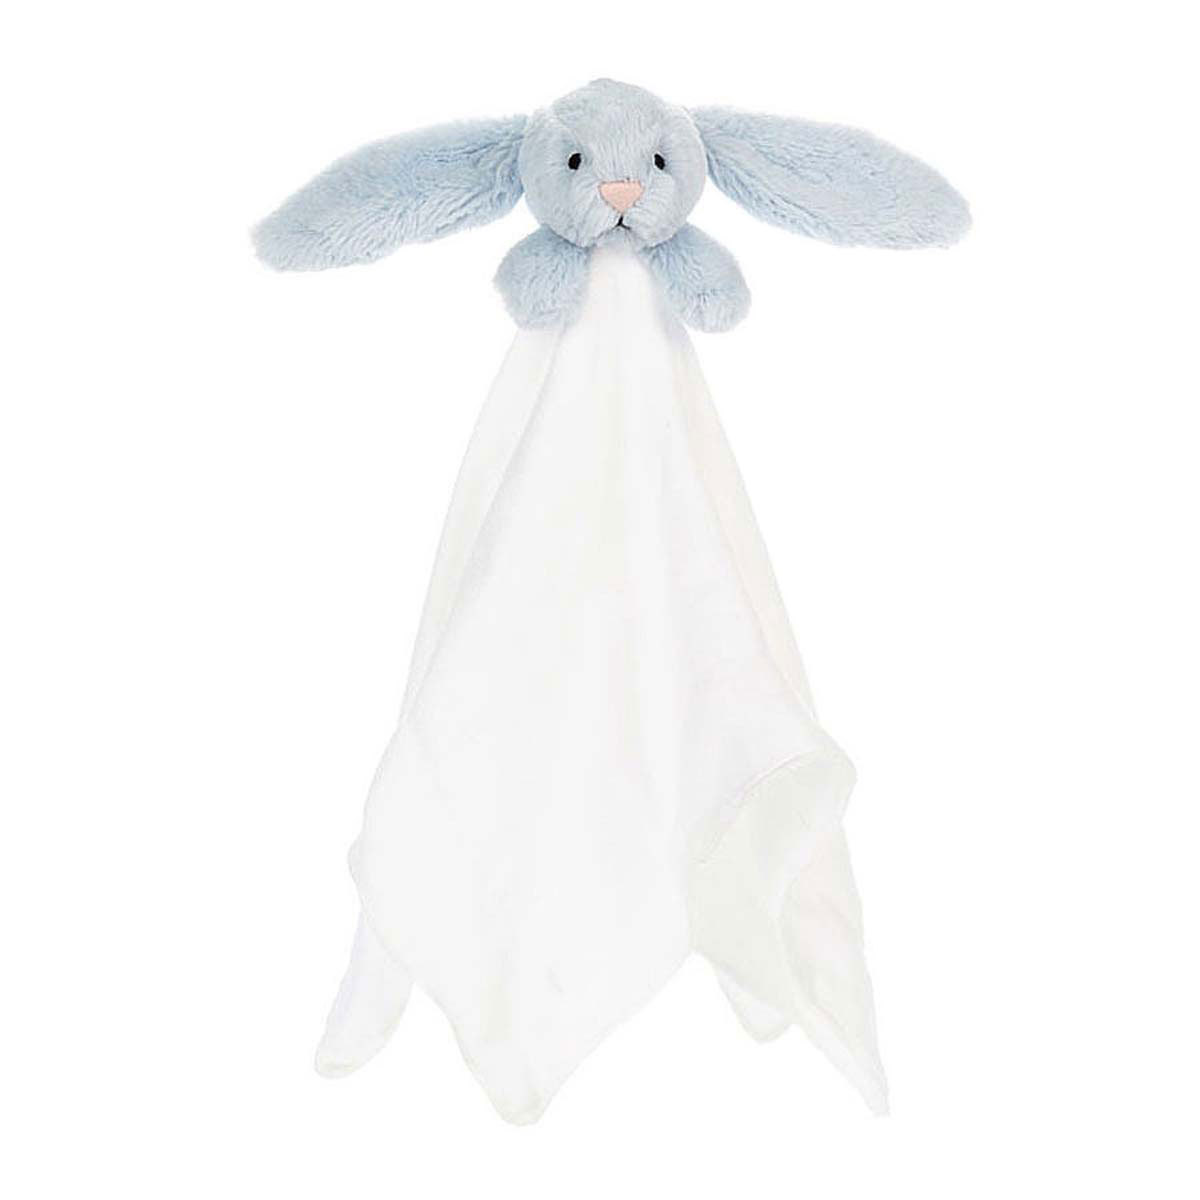 Doudou Bashful Blue Bunny Muslin Soother Bashful Blue Bunny Muslin Soother